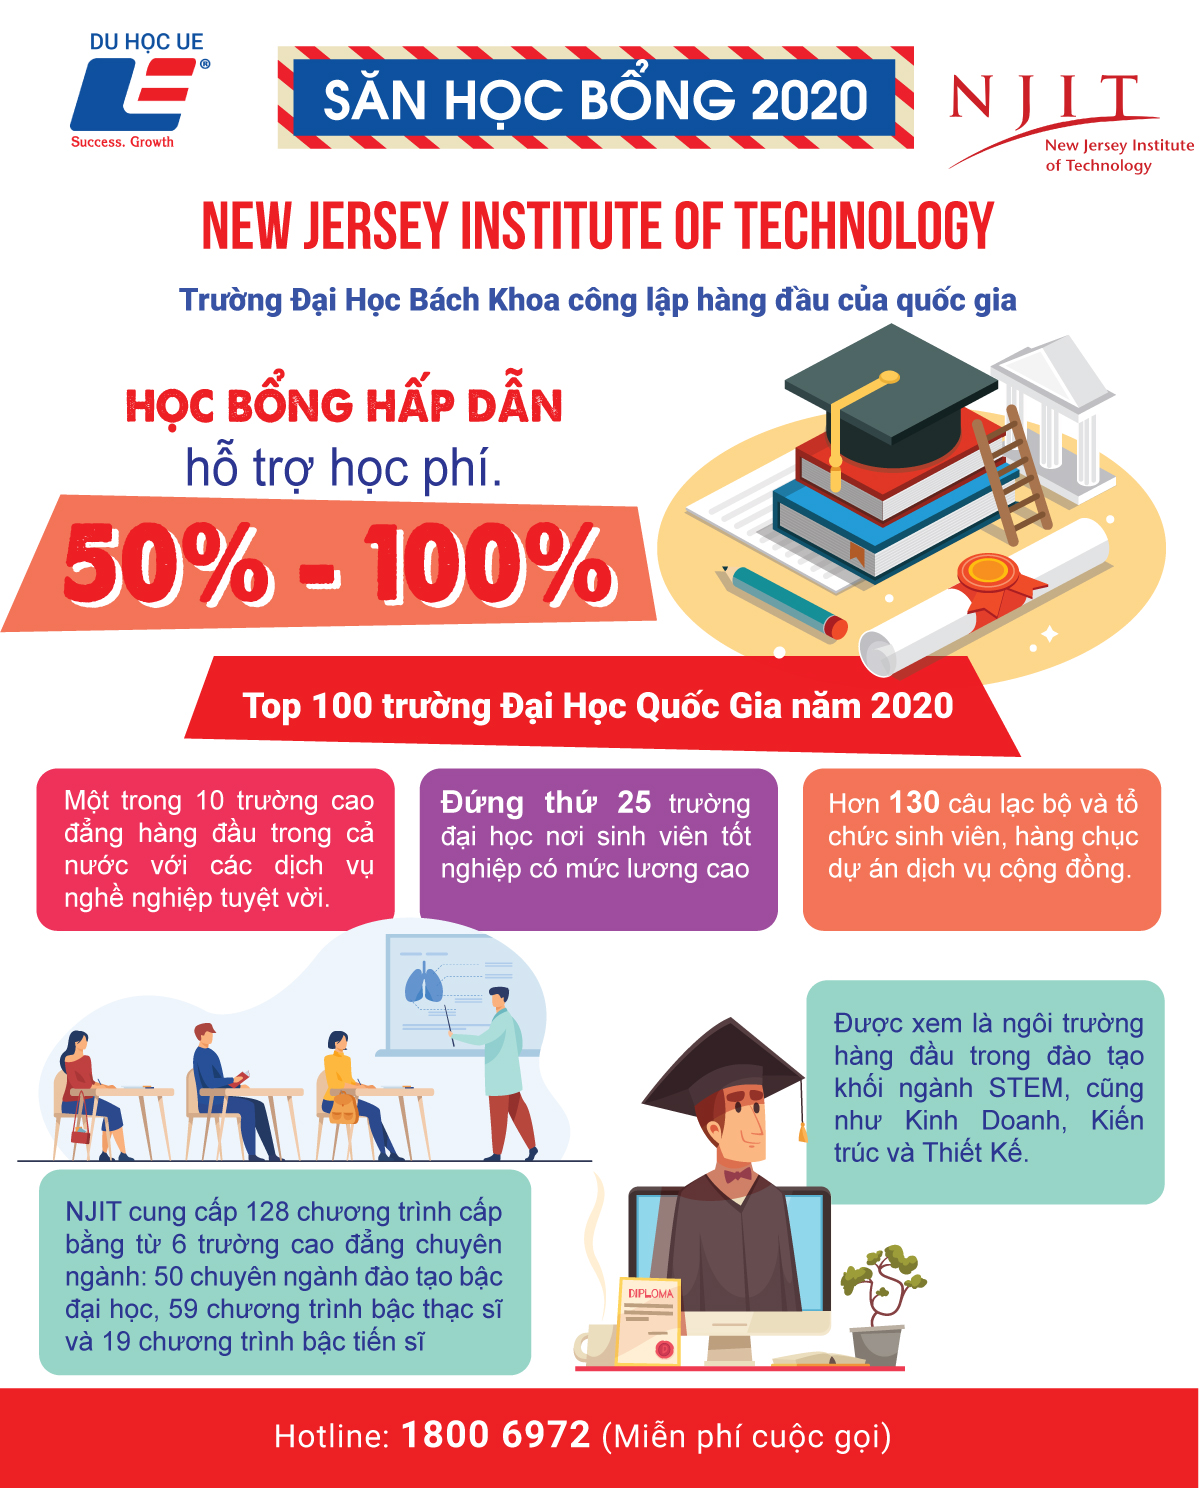 Săn học bổng du học trường top 100 - New Jersey Institute of Technology